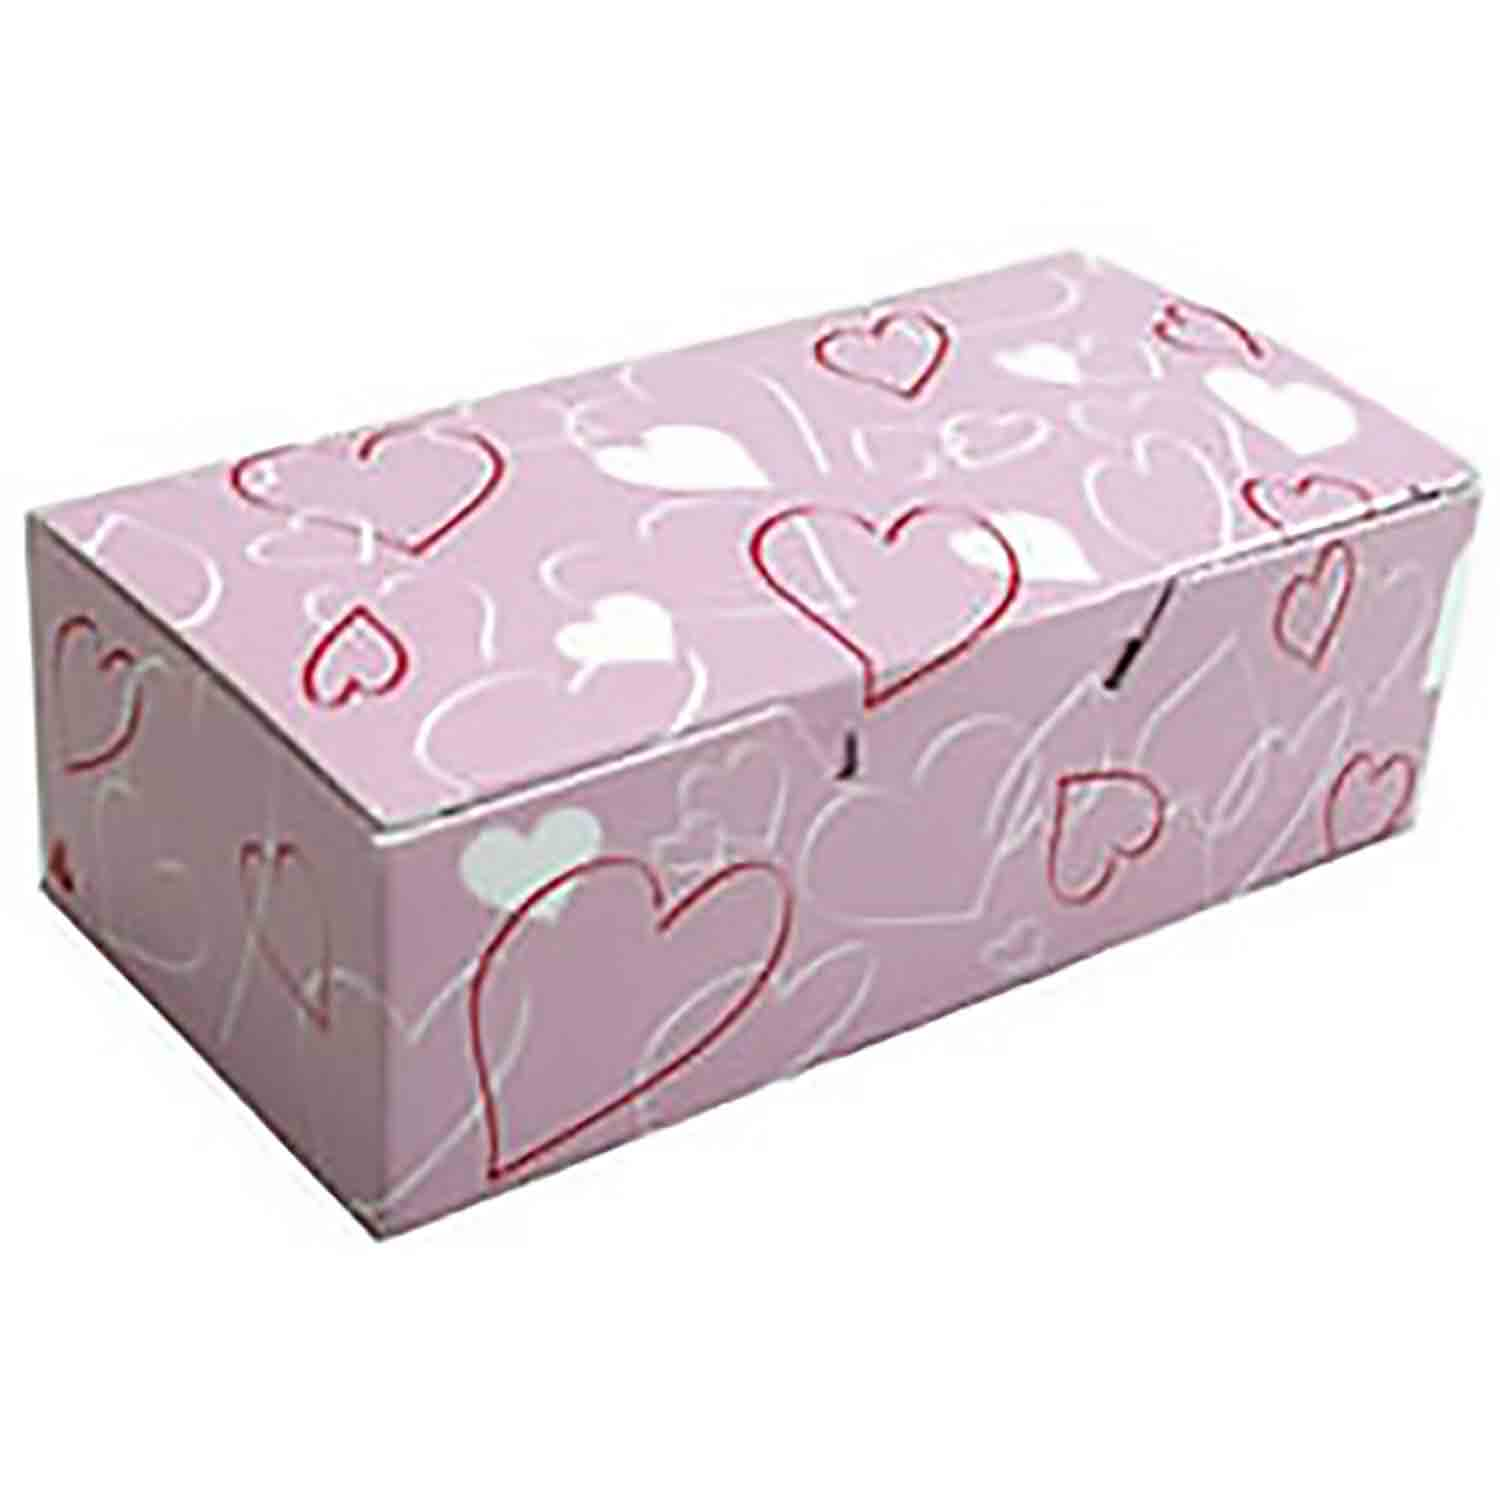 1/2 lb. Entangled Heart Candy Box